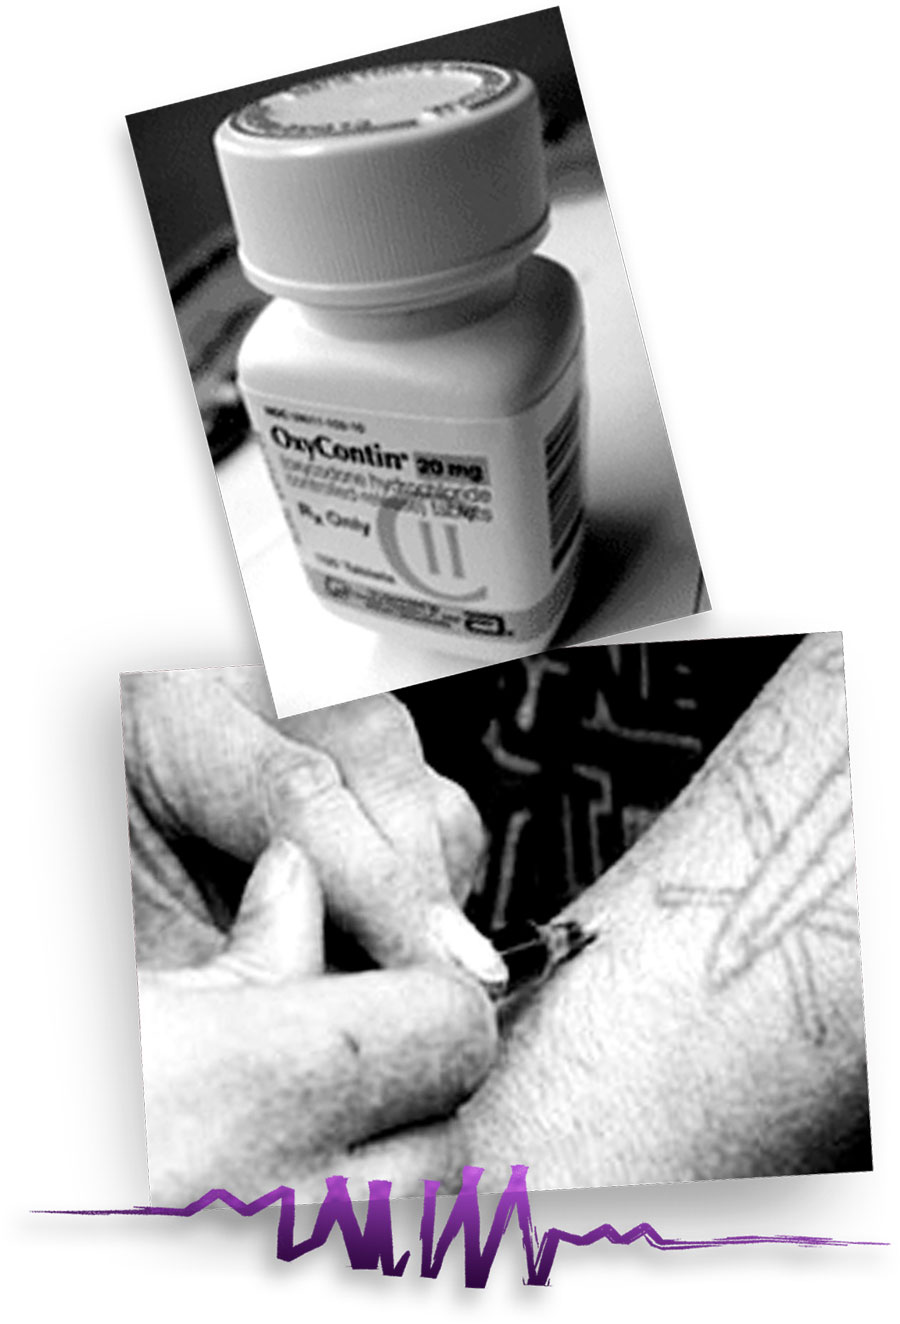 OxyContin Addiction & Abuse - Side Effects & Withdrawal Symptoms